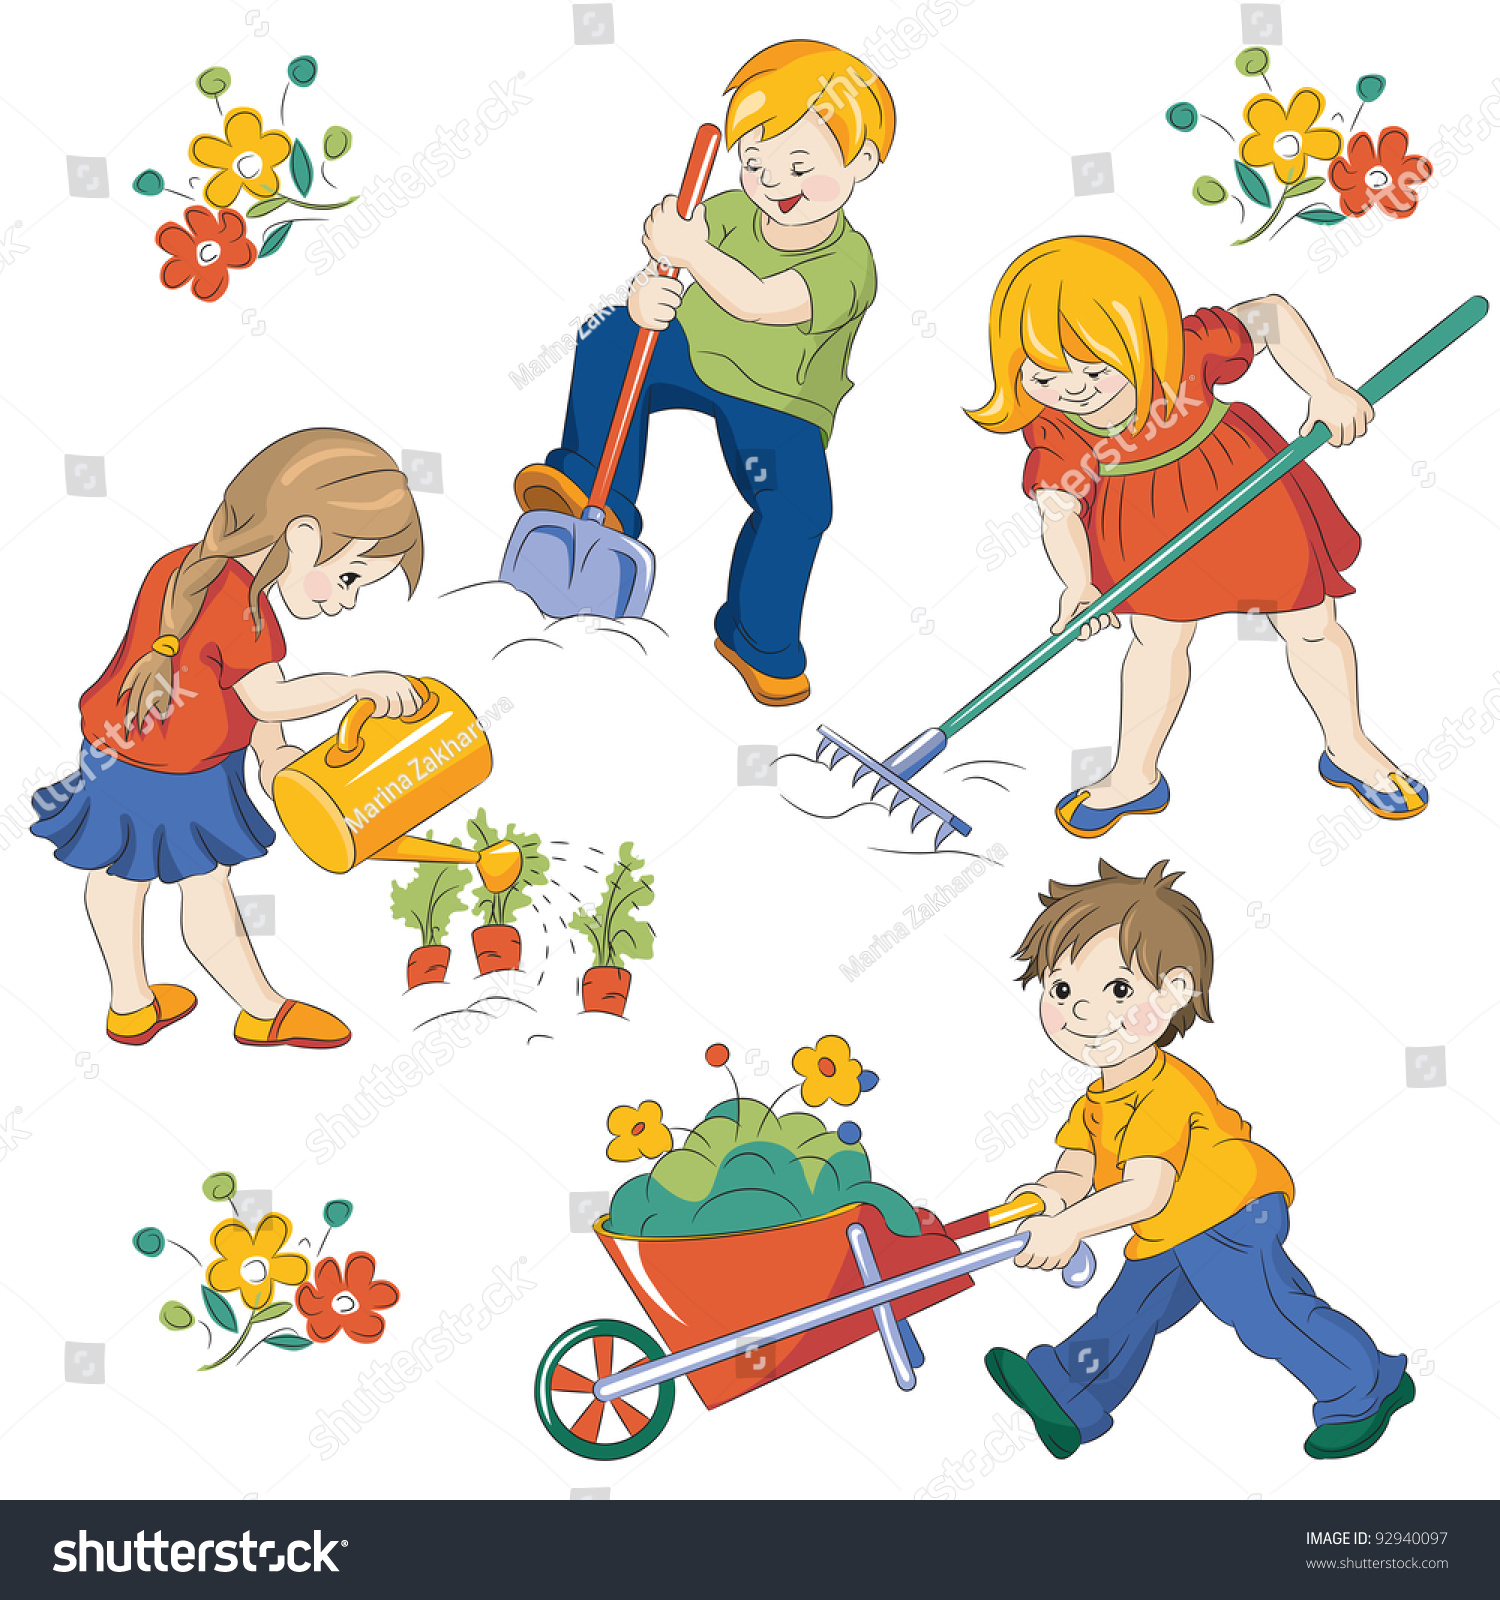 Vegetable garden kids drawing - Vegetable Garden Pictures For Kids Children Workings In A Vegetable Garden